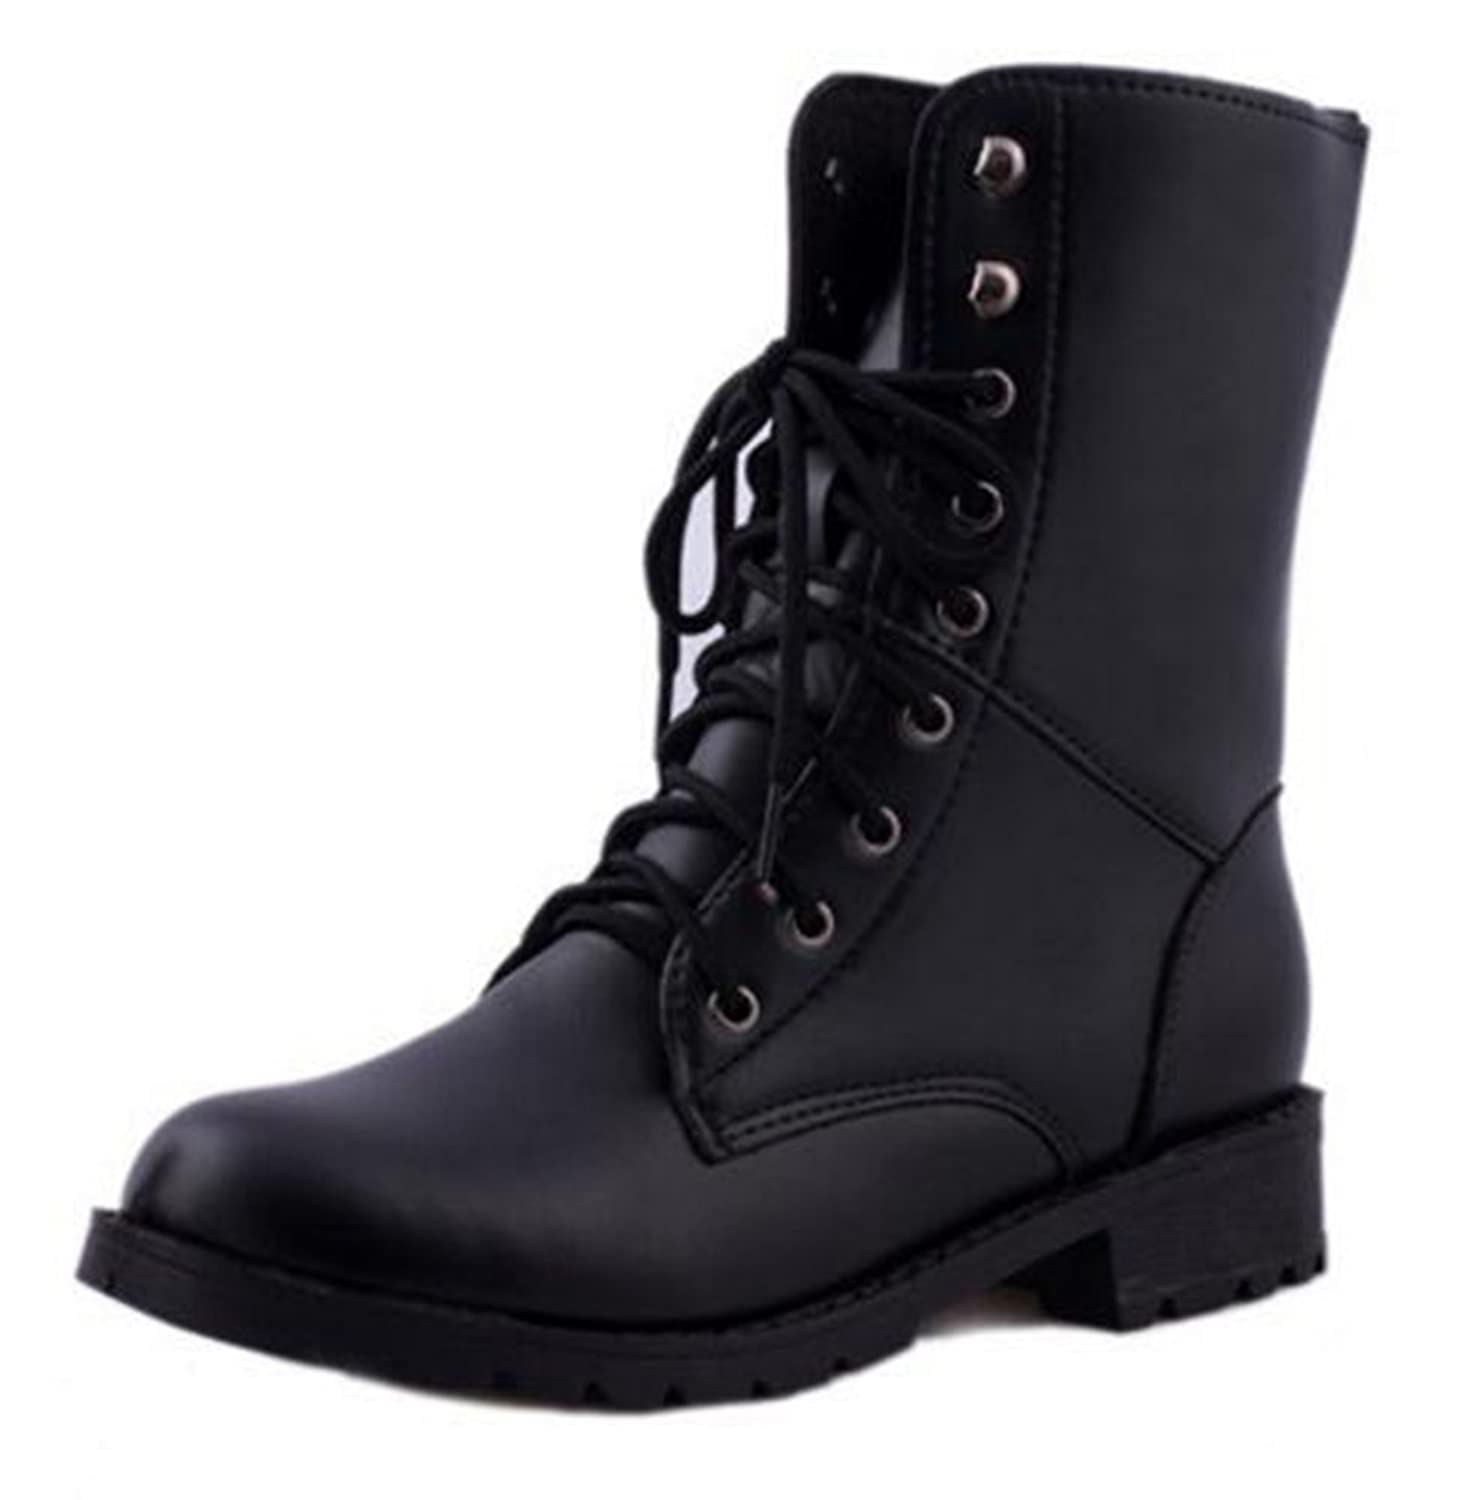 CHFSO Women's Stylish Solid Waterproof Faux Fur Lined Round Toe Lace Up Low Heel Couple Winter Martin Boots